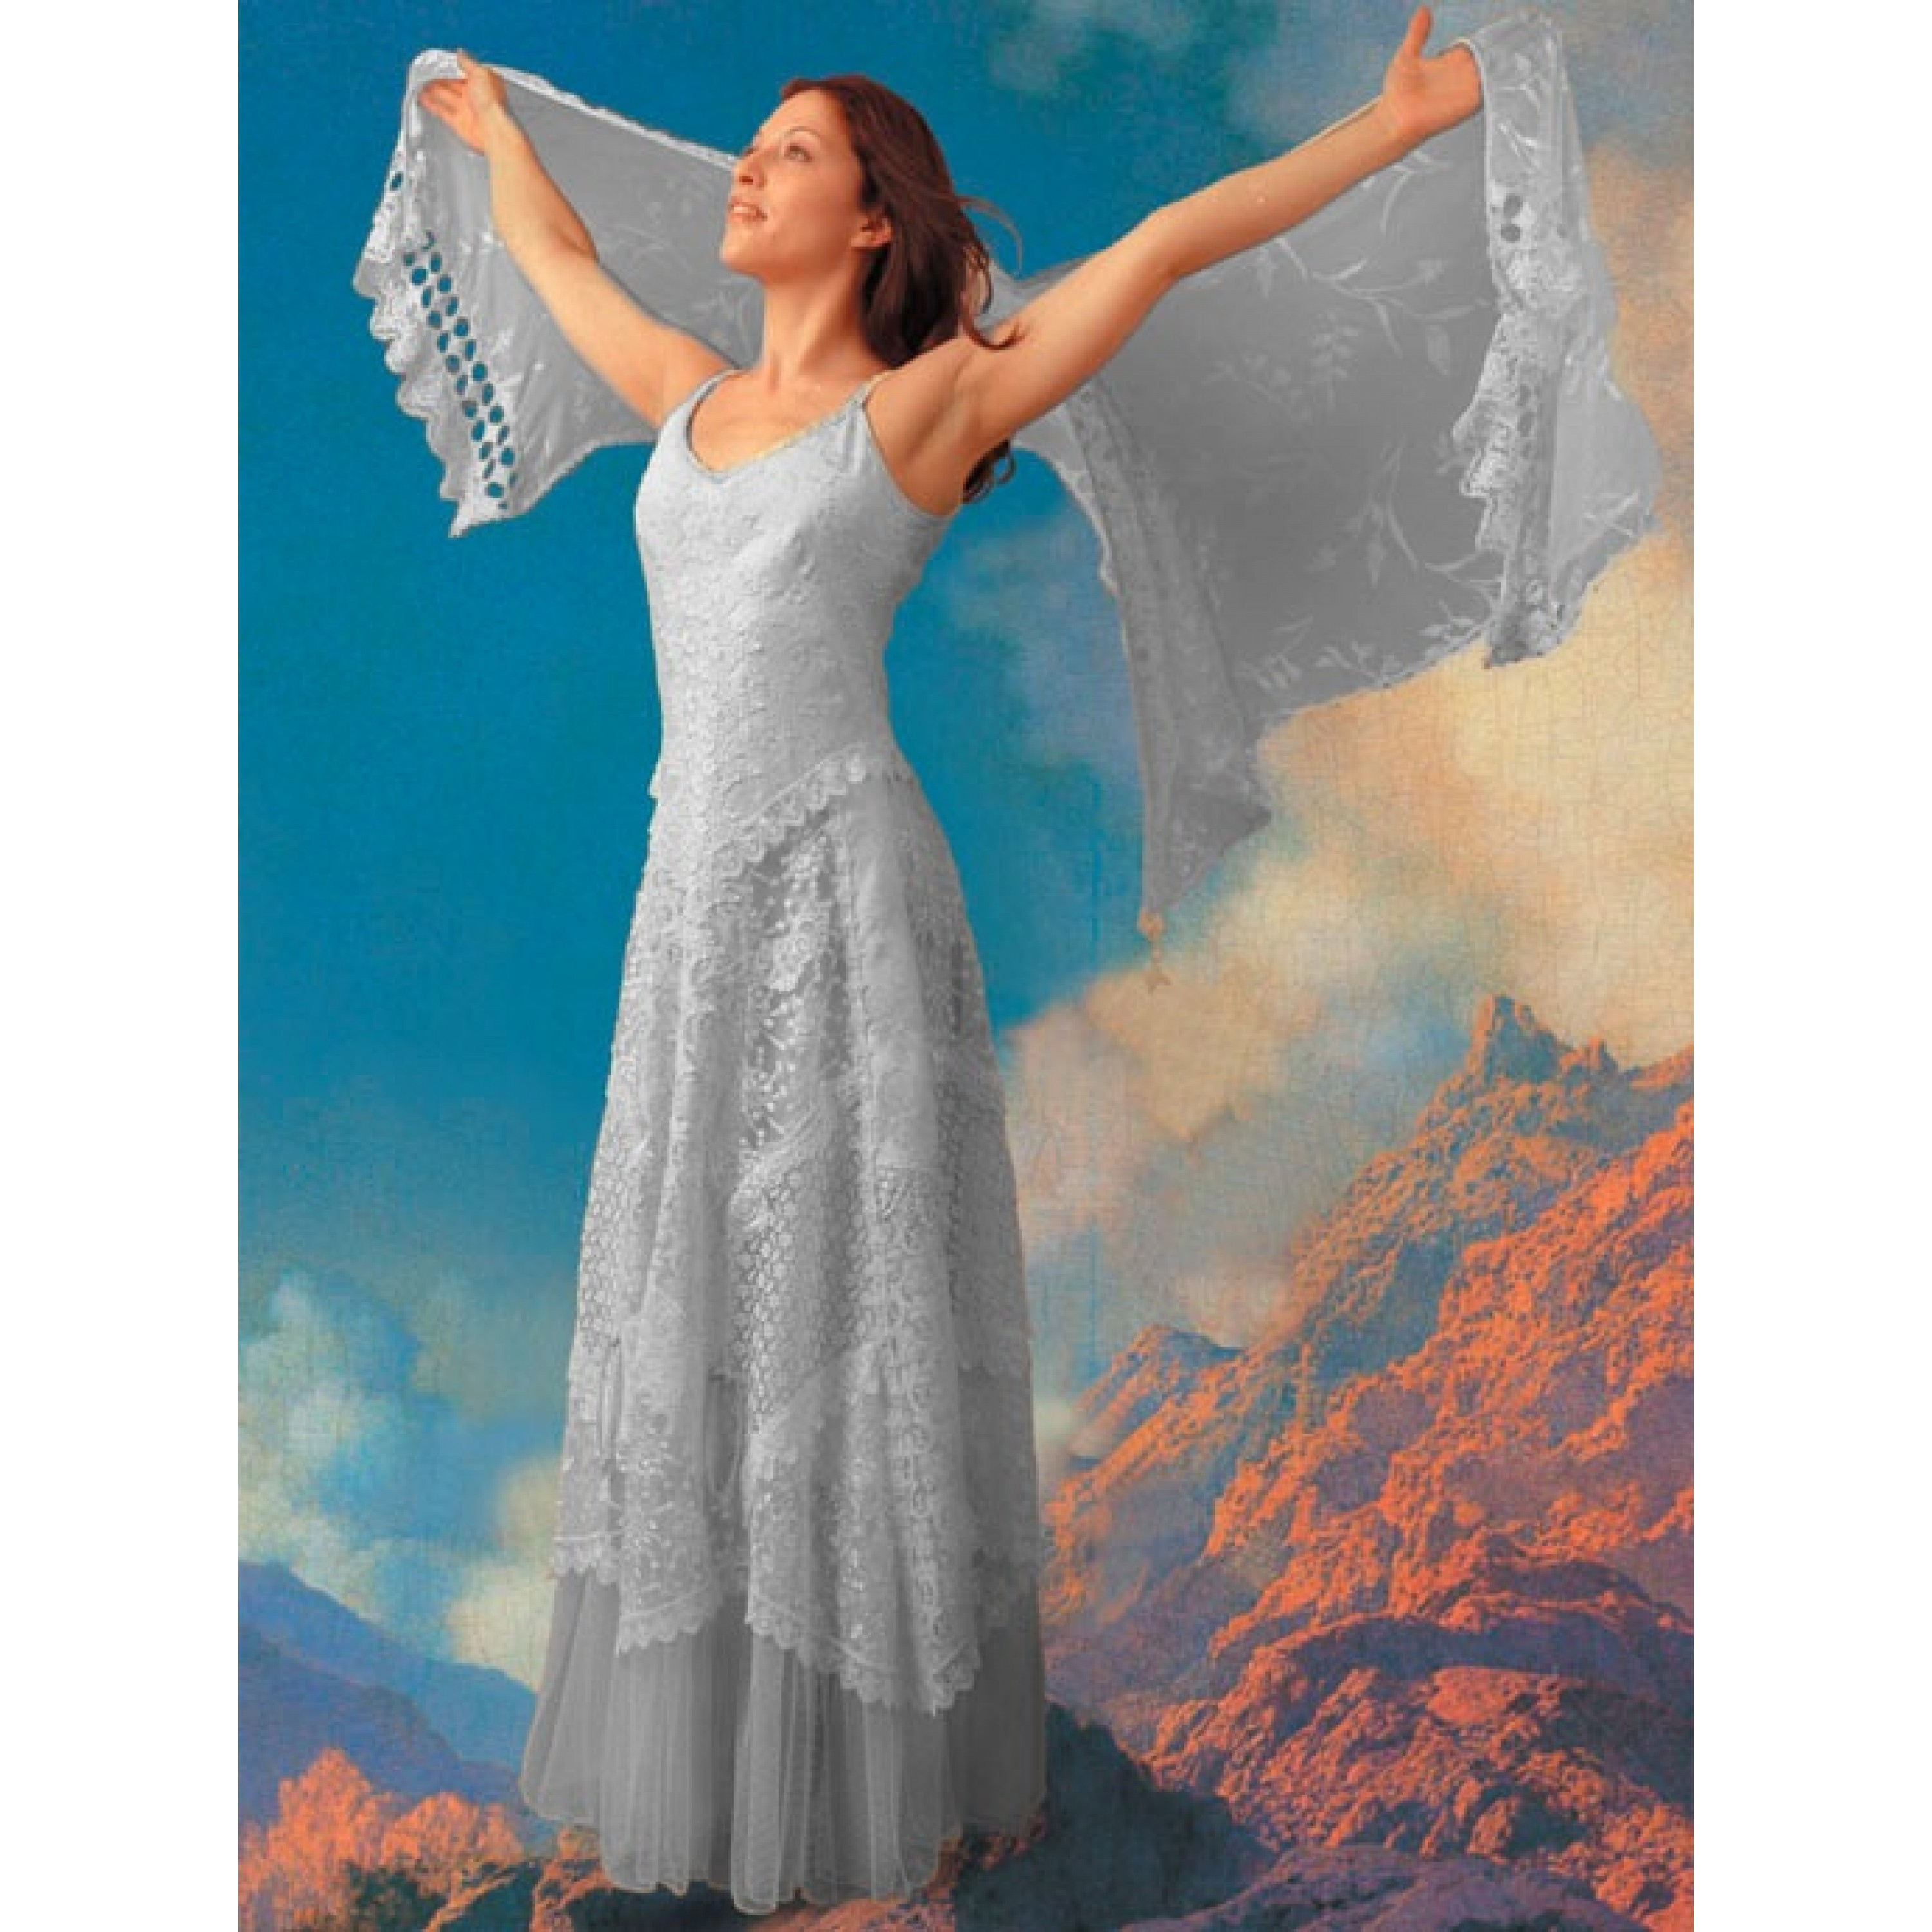 Western Wedding Gowns, Dresses and Separates